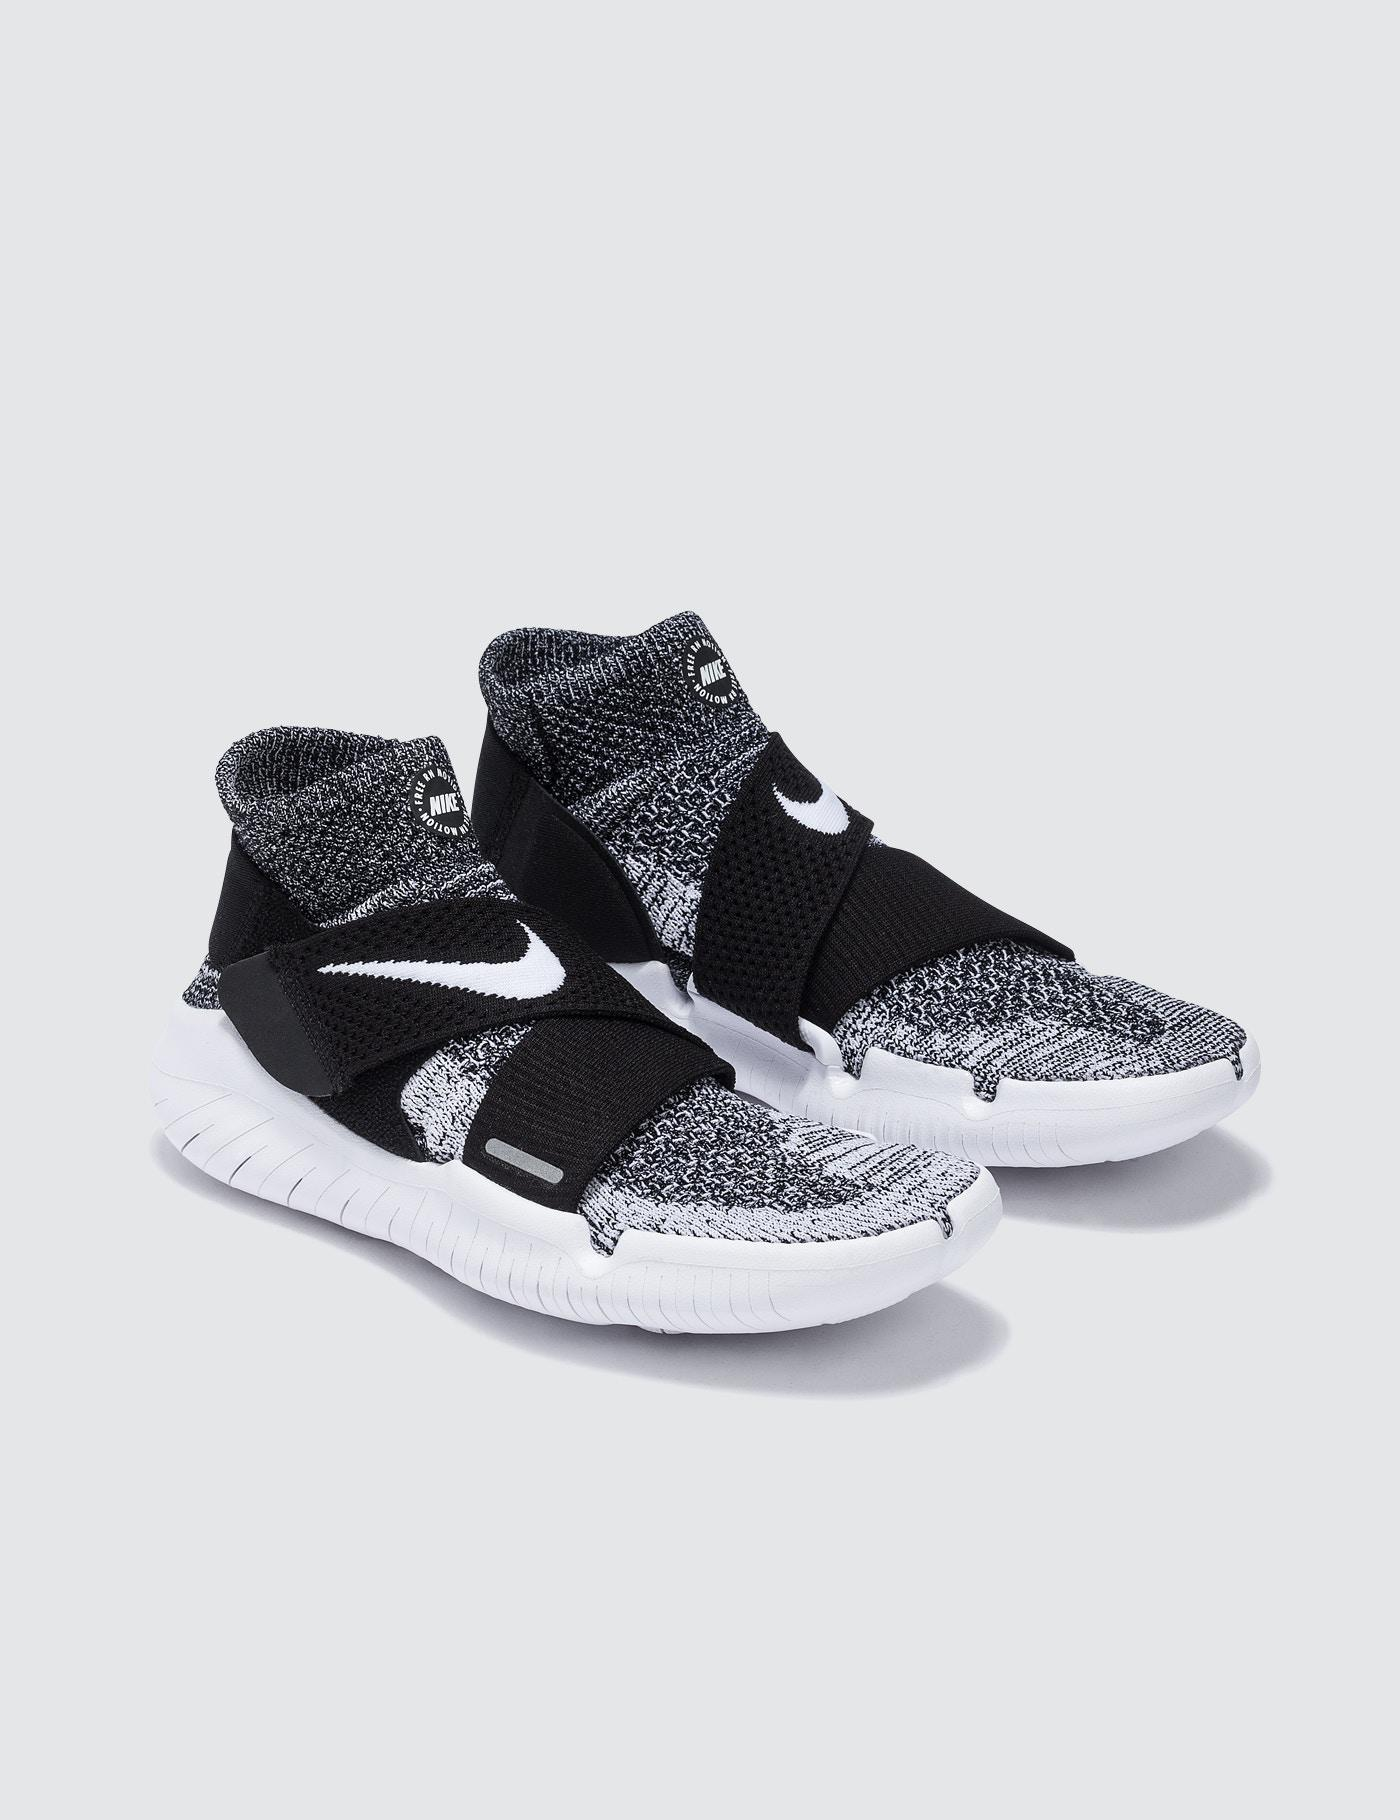 c330f46d5dfd8 Gallery. Previously sold at  HBX · Men s Nike Free ...